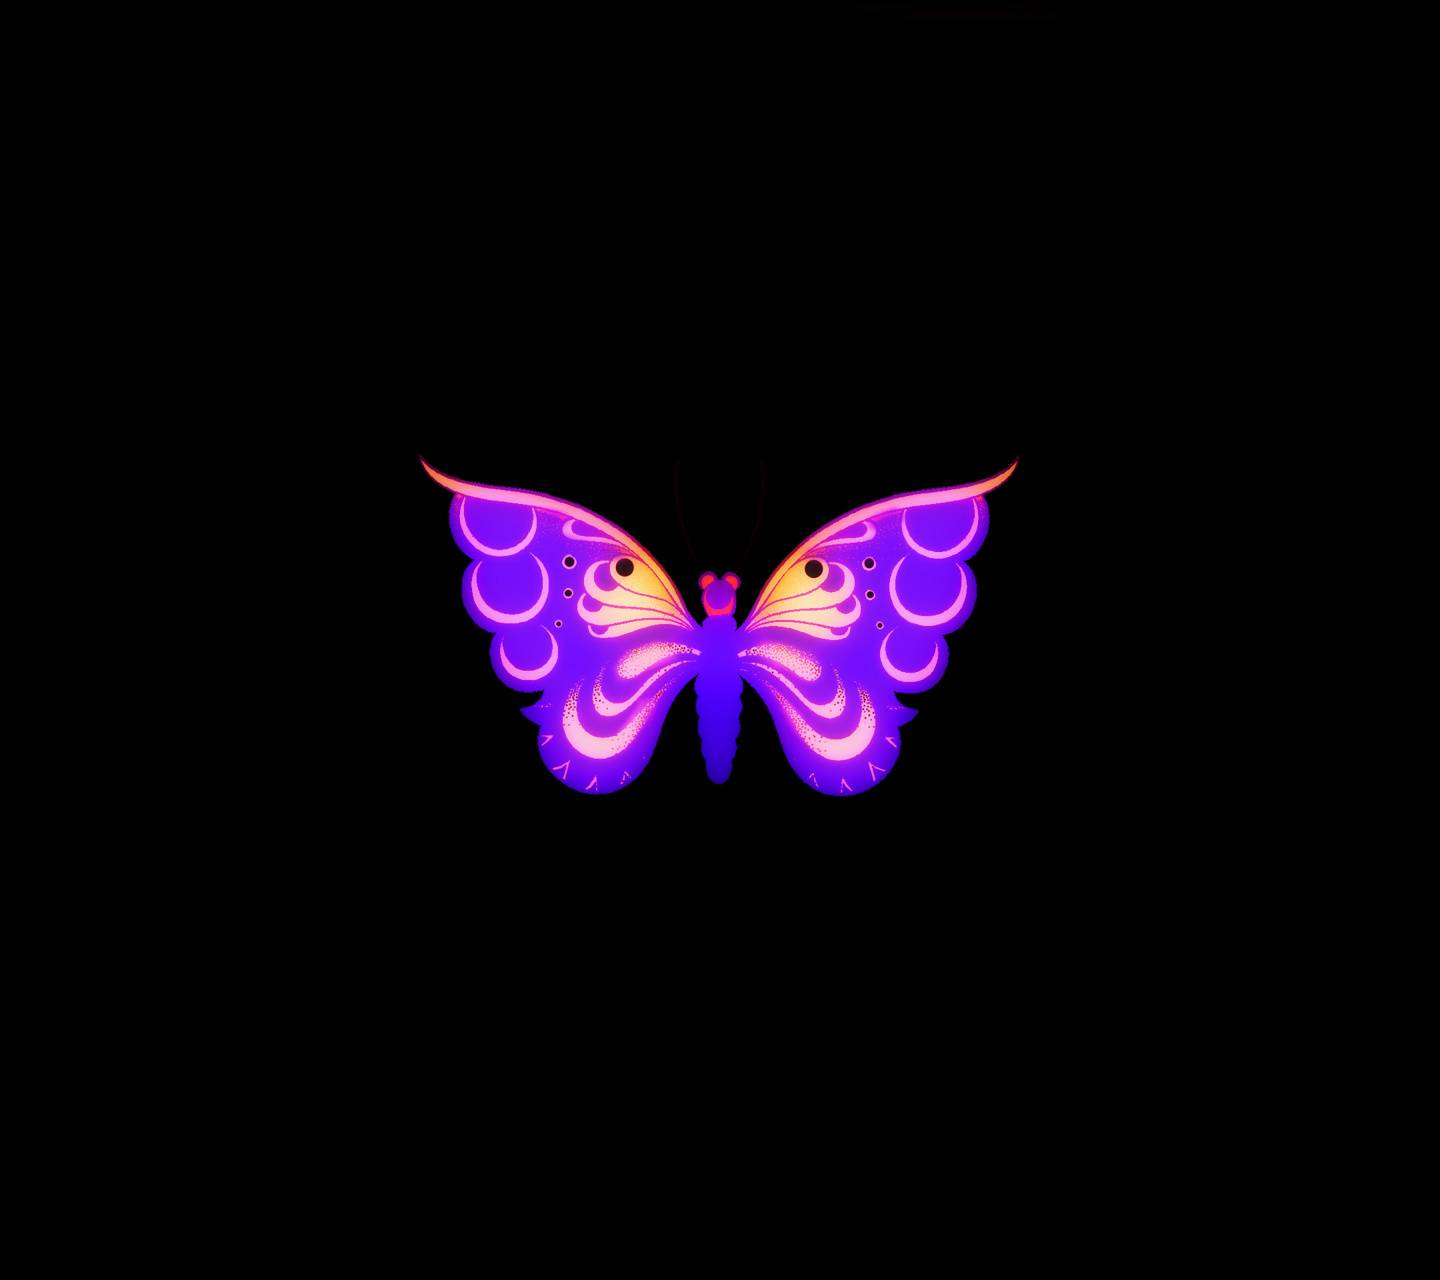 The Butterfly 10